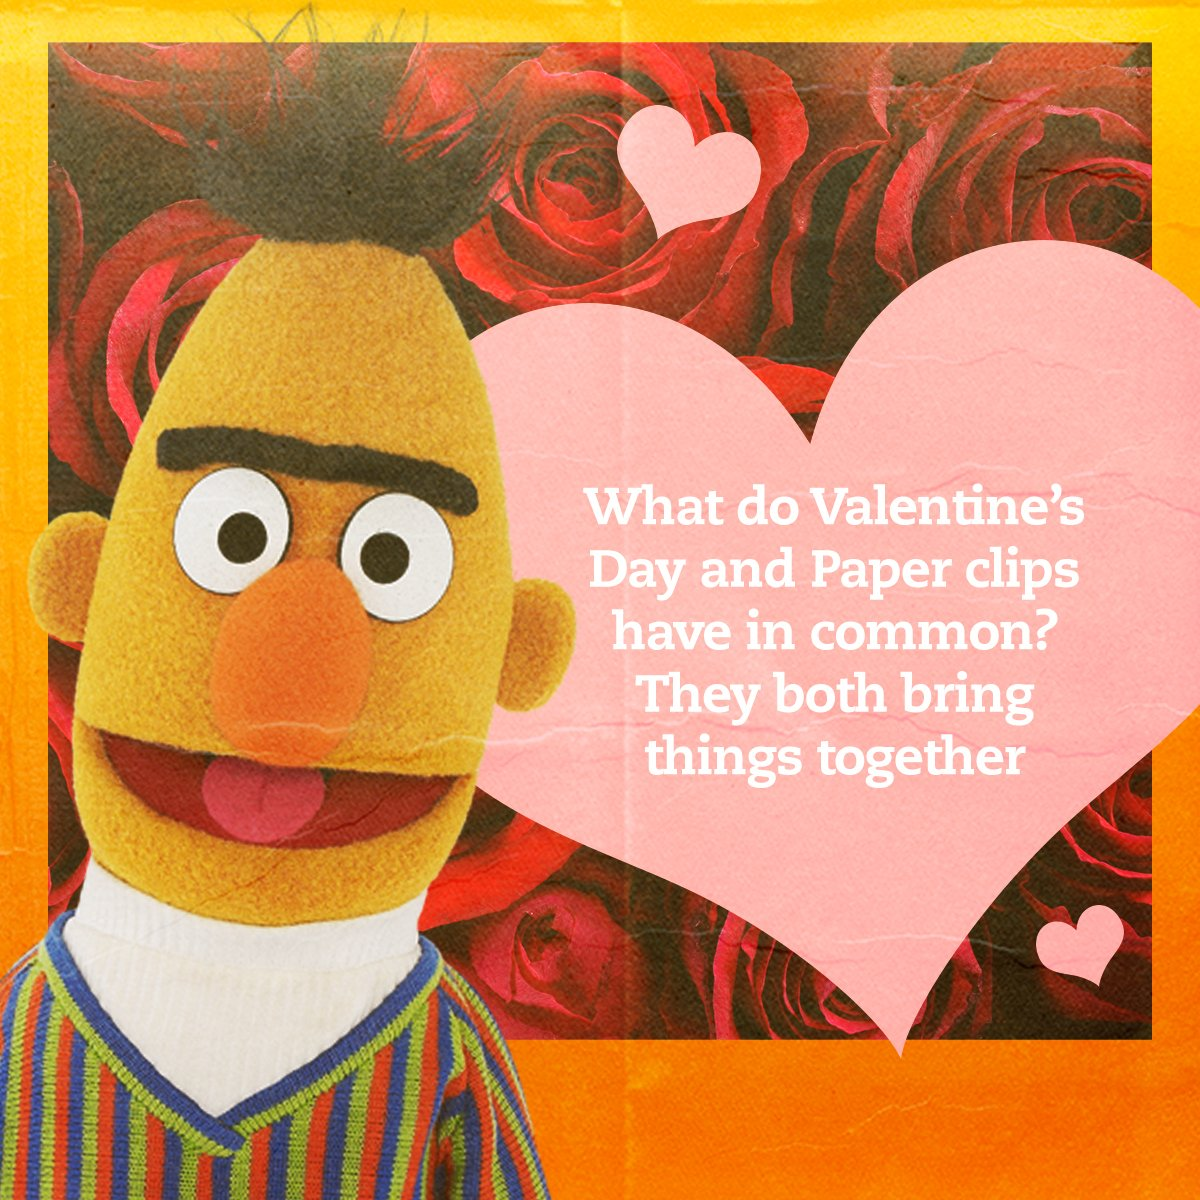 #ValentinesDay is about celebrating the things you love. Like paperclips. And oatmeal. And pigeons.